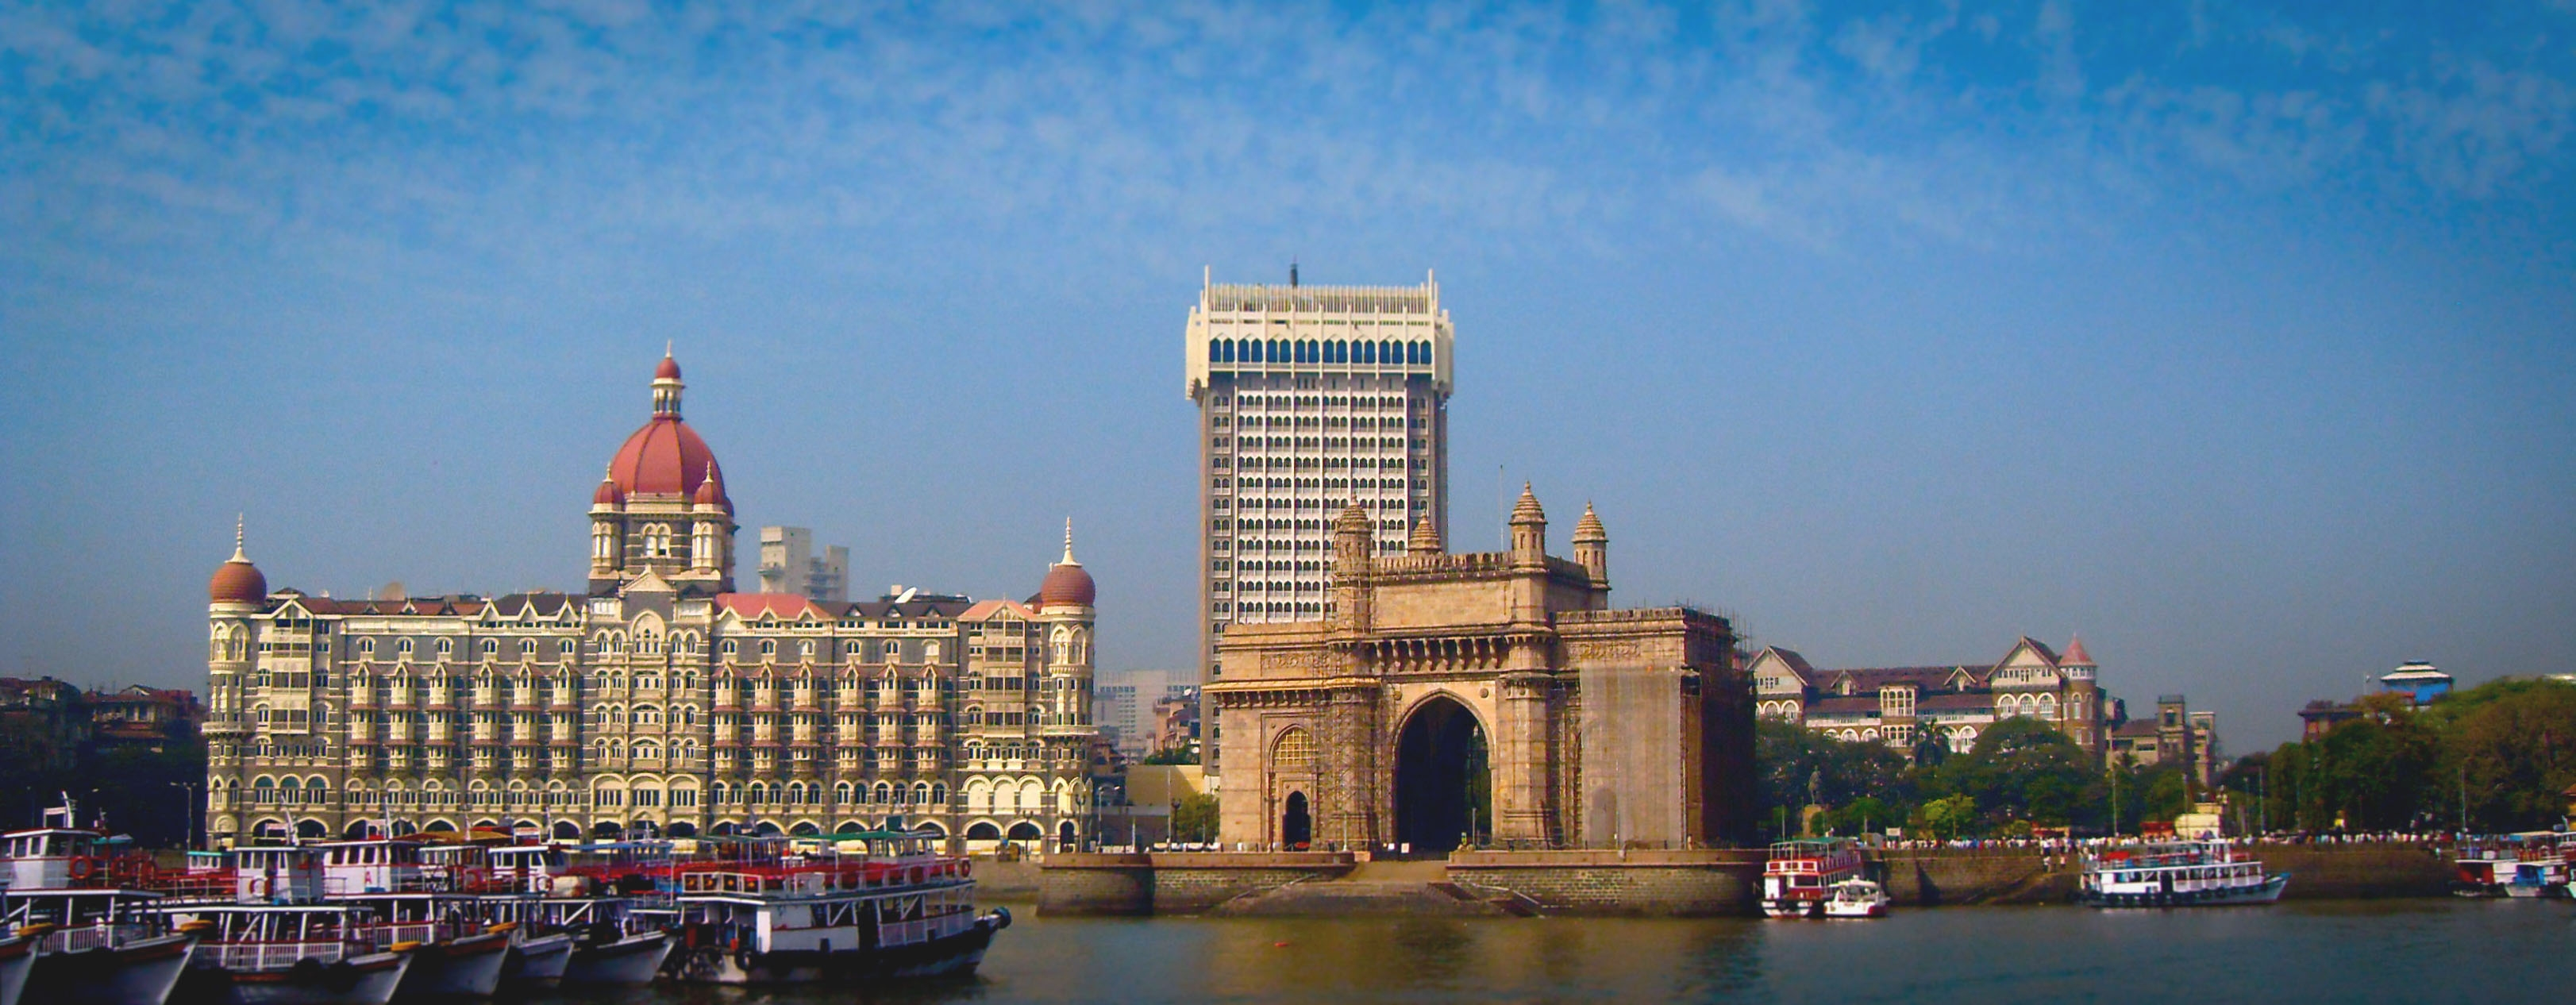 Taj Mahal Hotel and Gateway of India